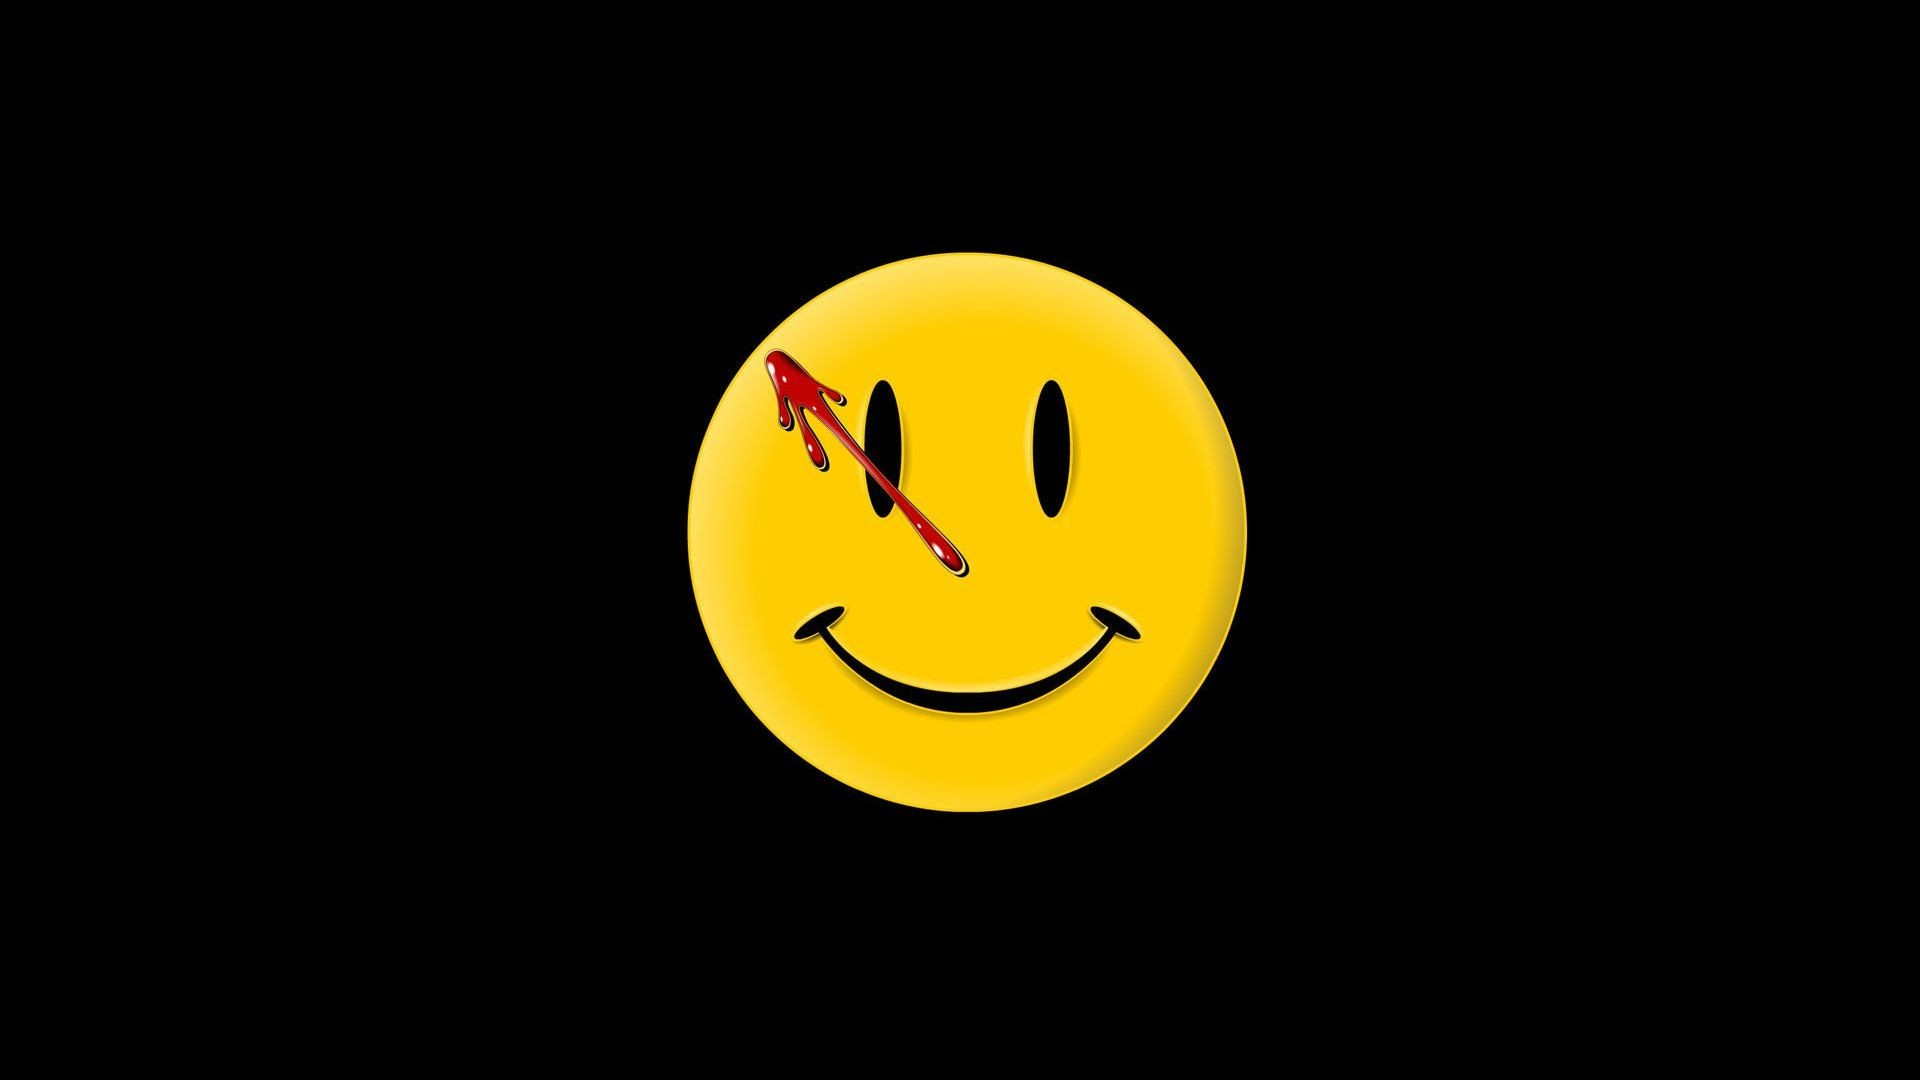 1920x1080 Smiley Face Black Background Pictures)